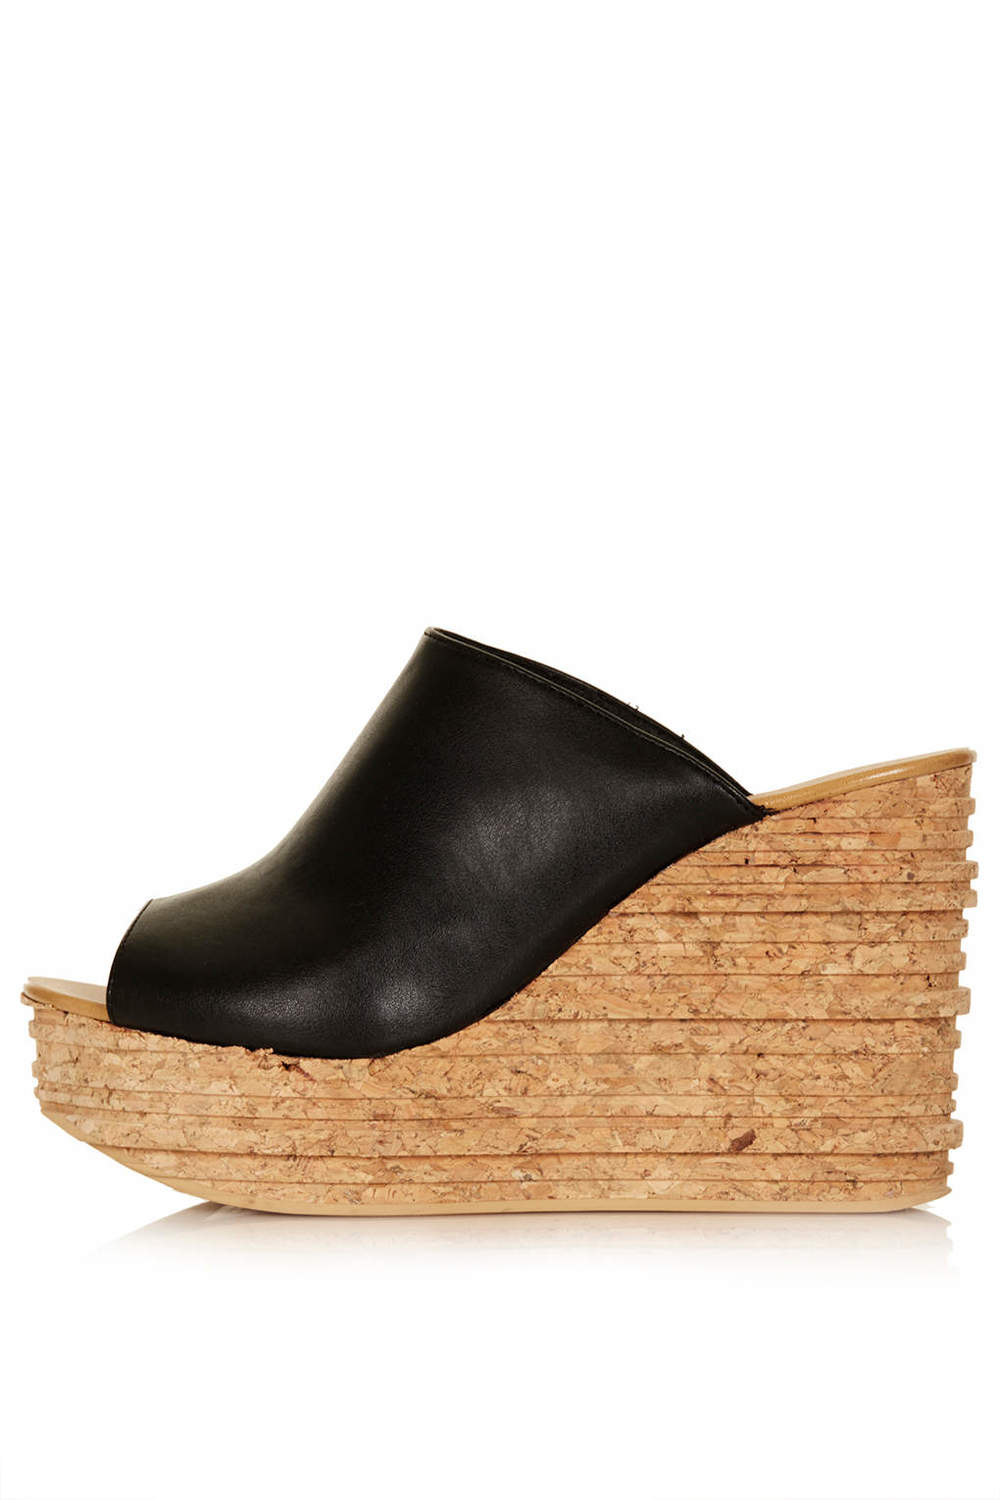 Walnut mule wedges. Also available in white. Topshop. $110.